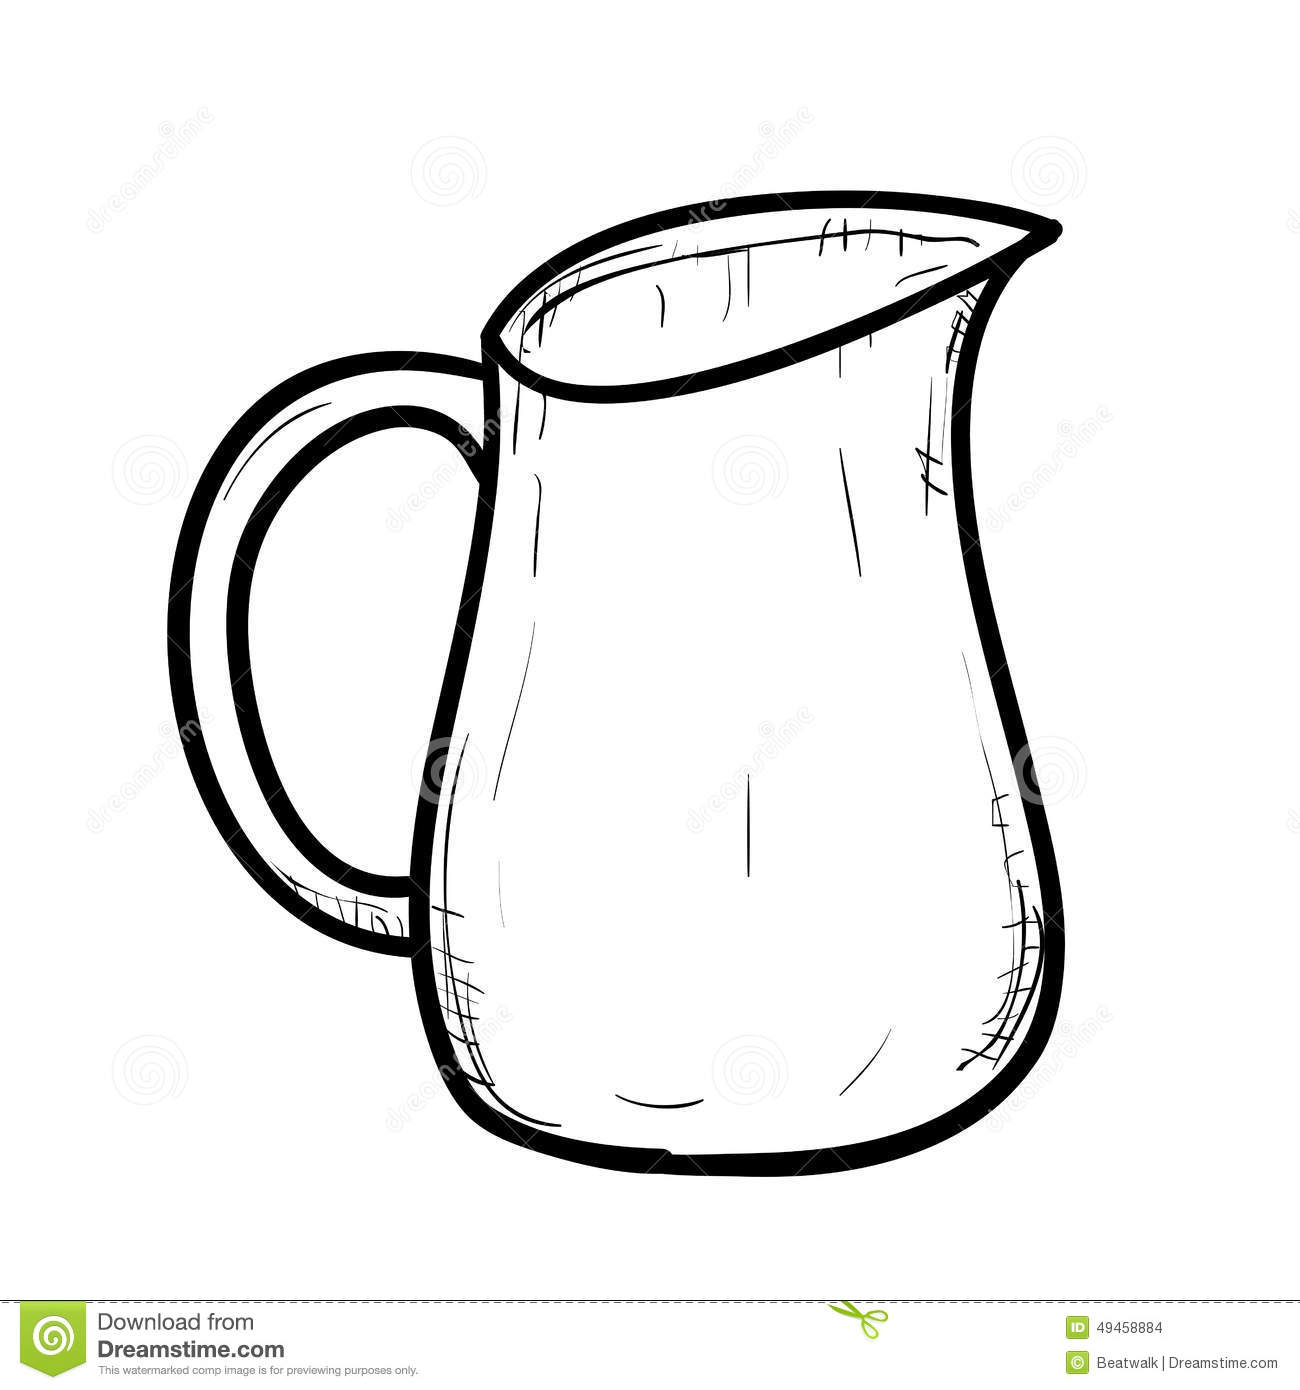 Clipart Of Jug Black And White.